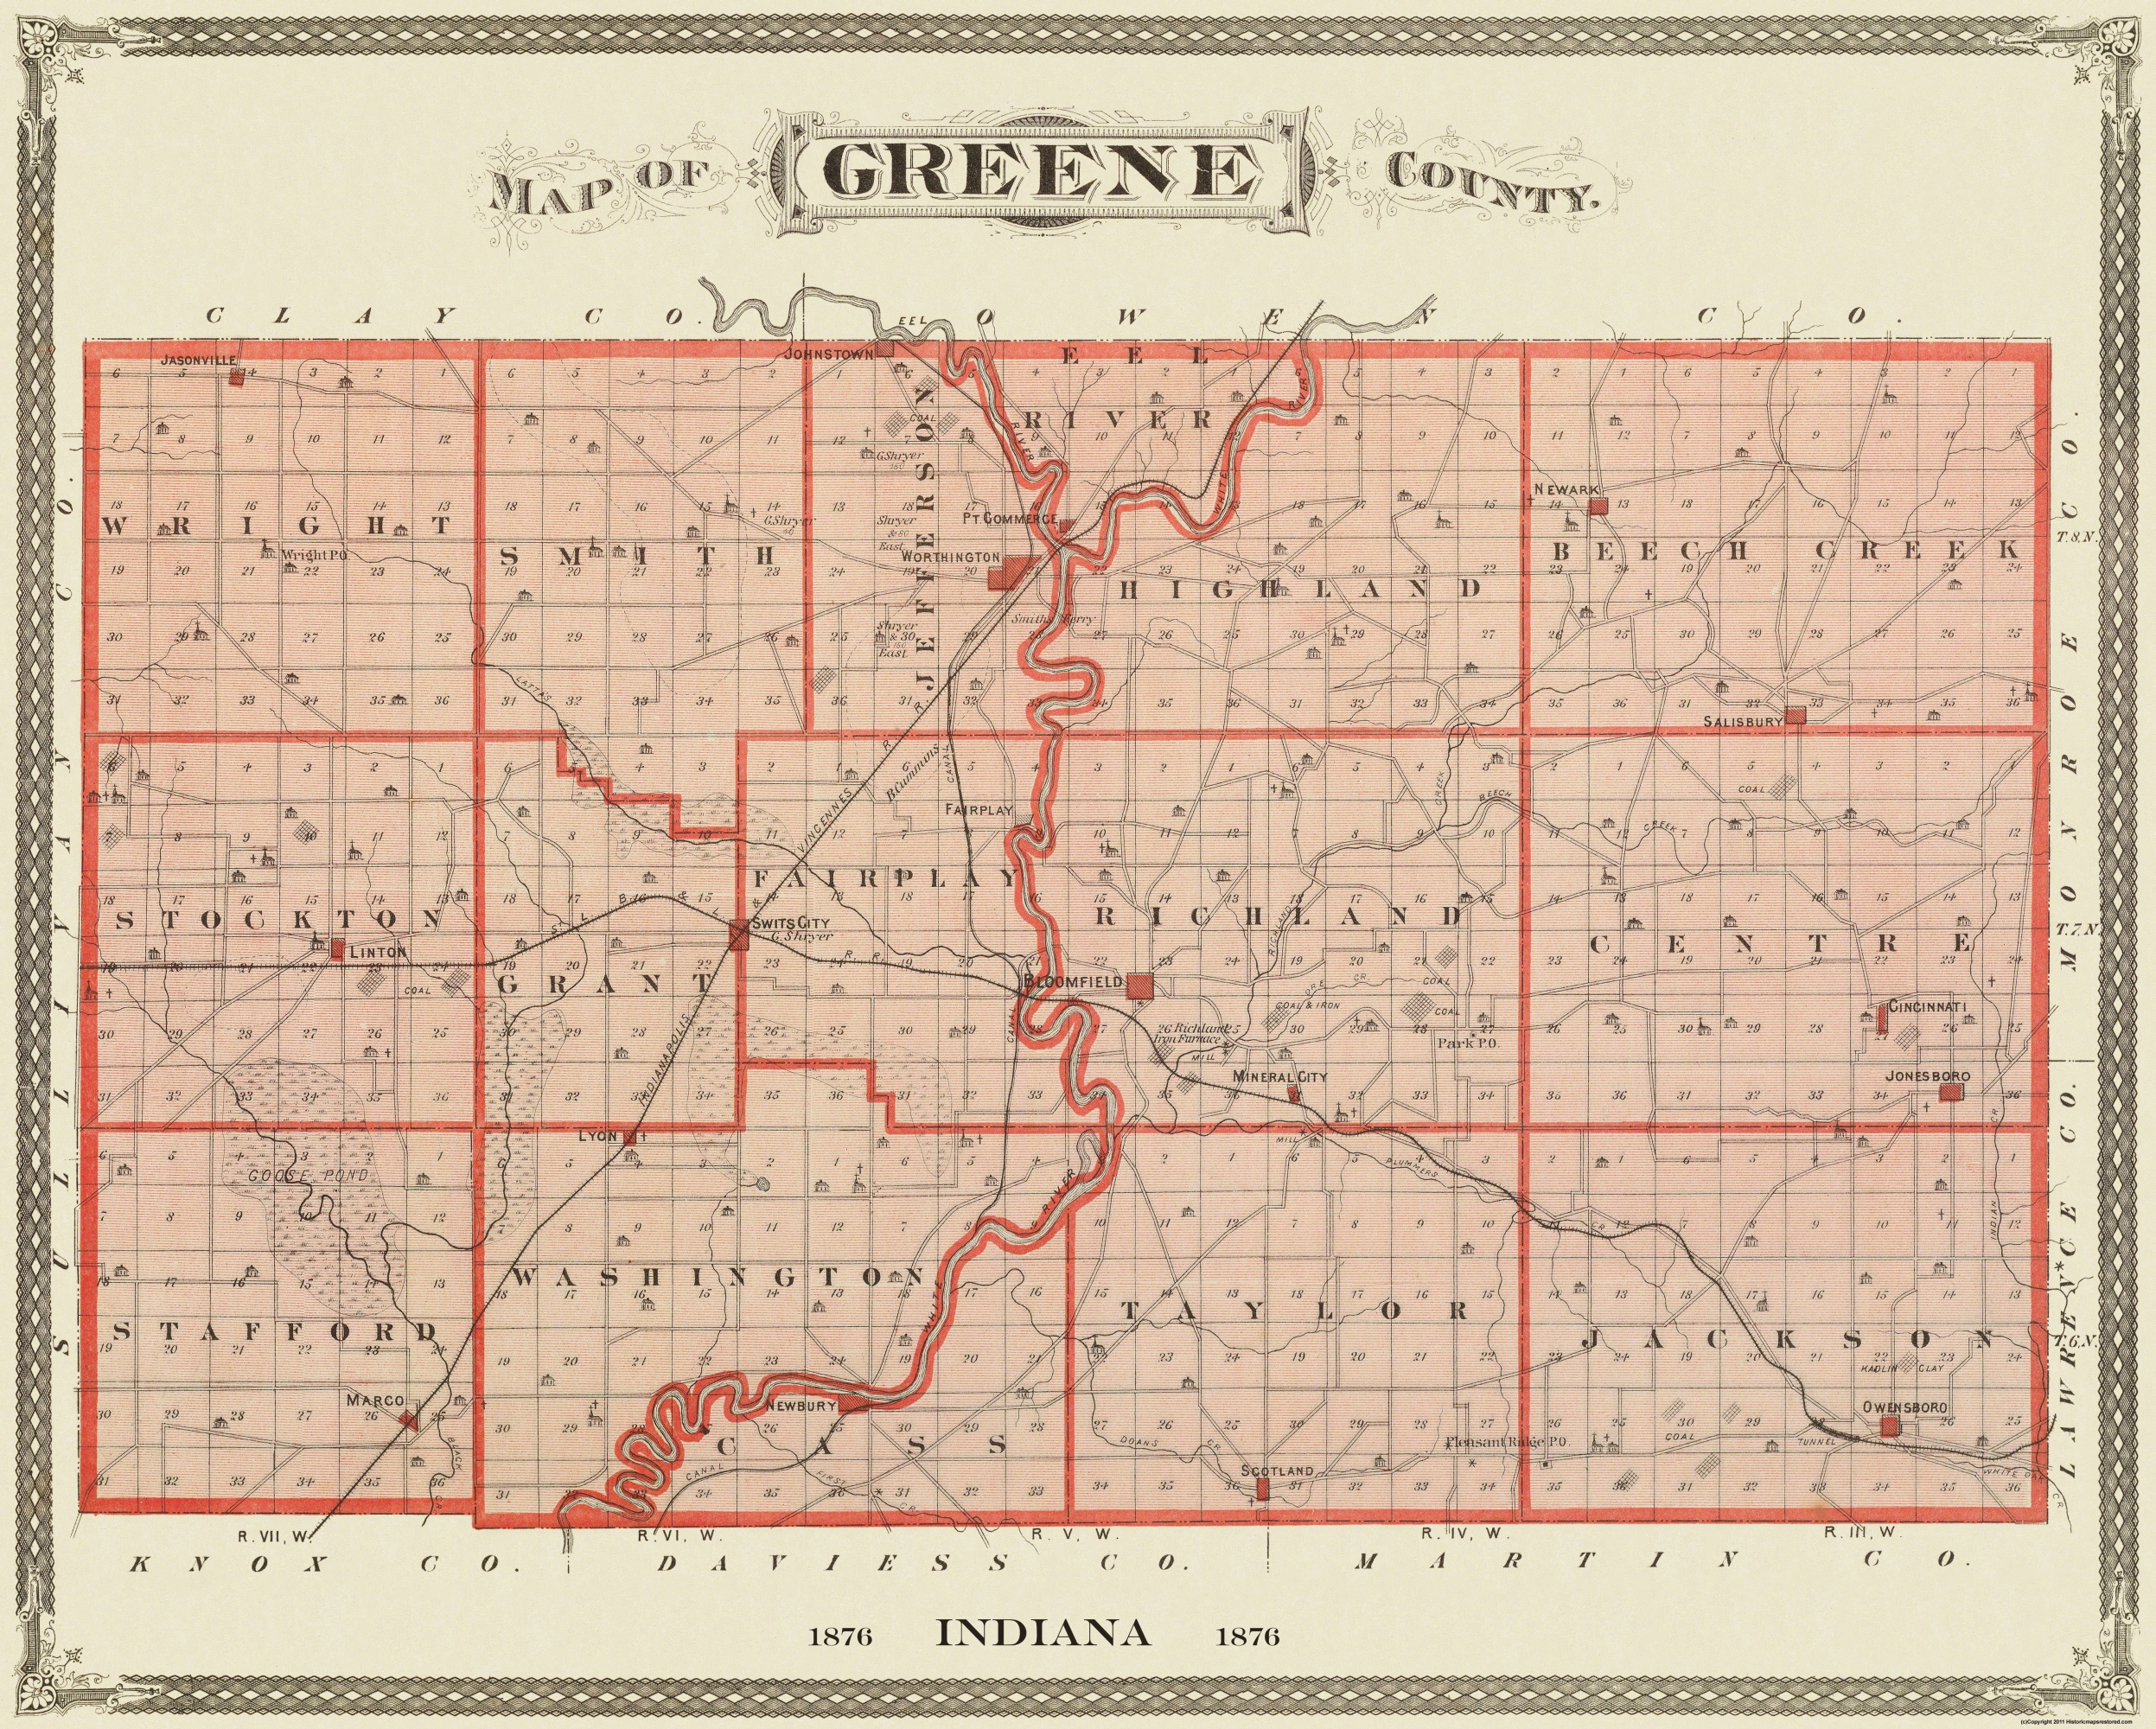 Indiana Map County.Old County Map Greene Indiana Landowner 1876